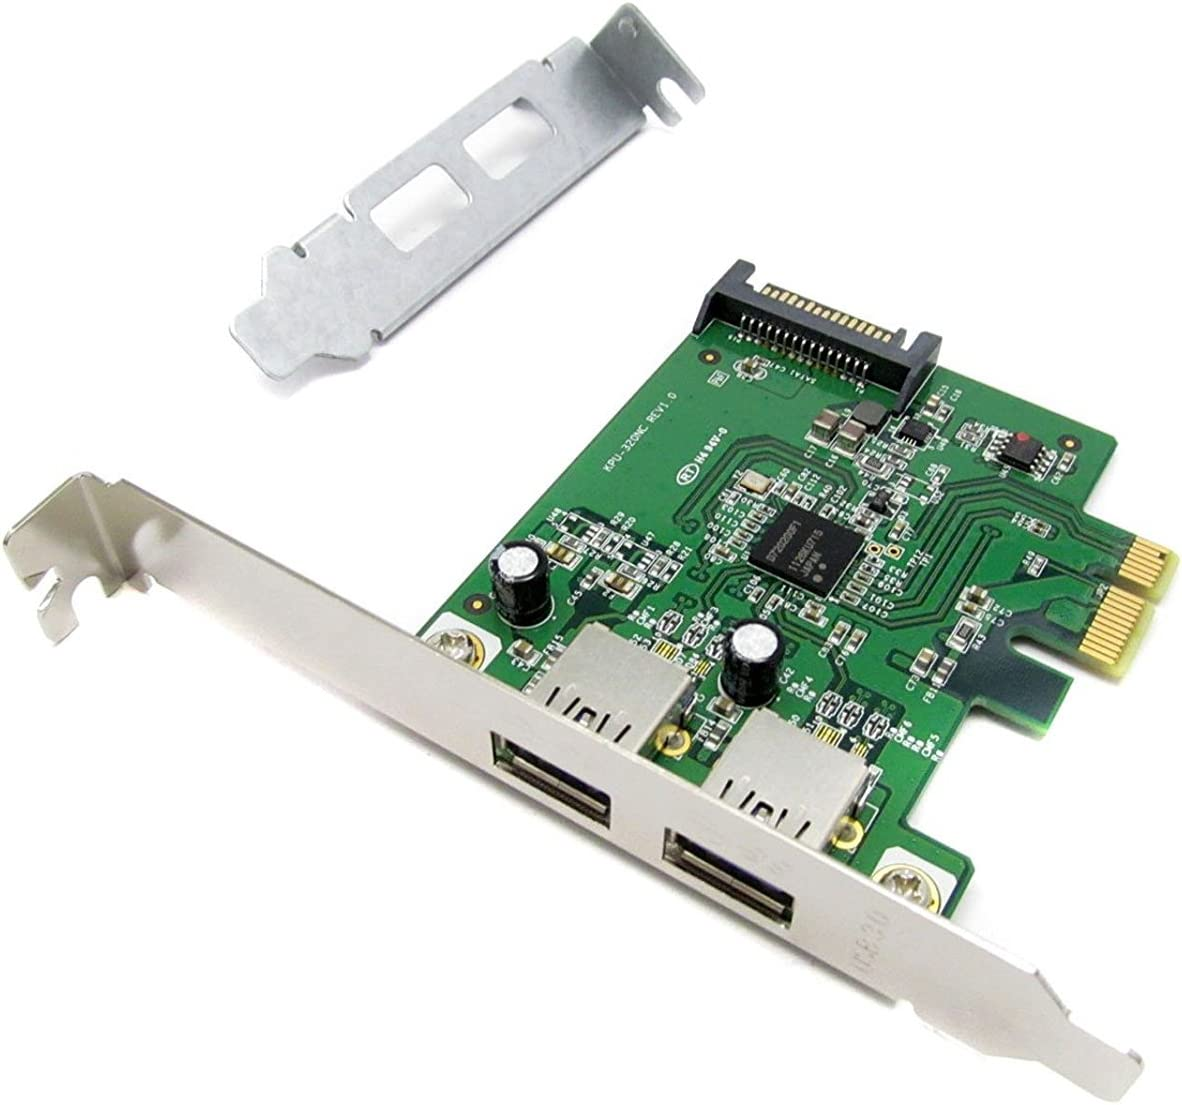 HP 608151-001 SuperSpeed USB 3.0 PCIe x1 interface card - Includes low profile bracket